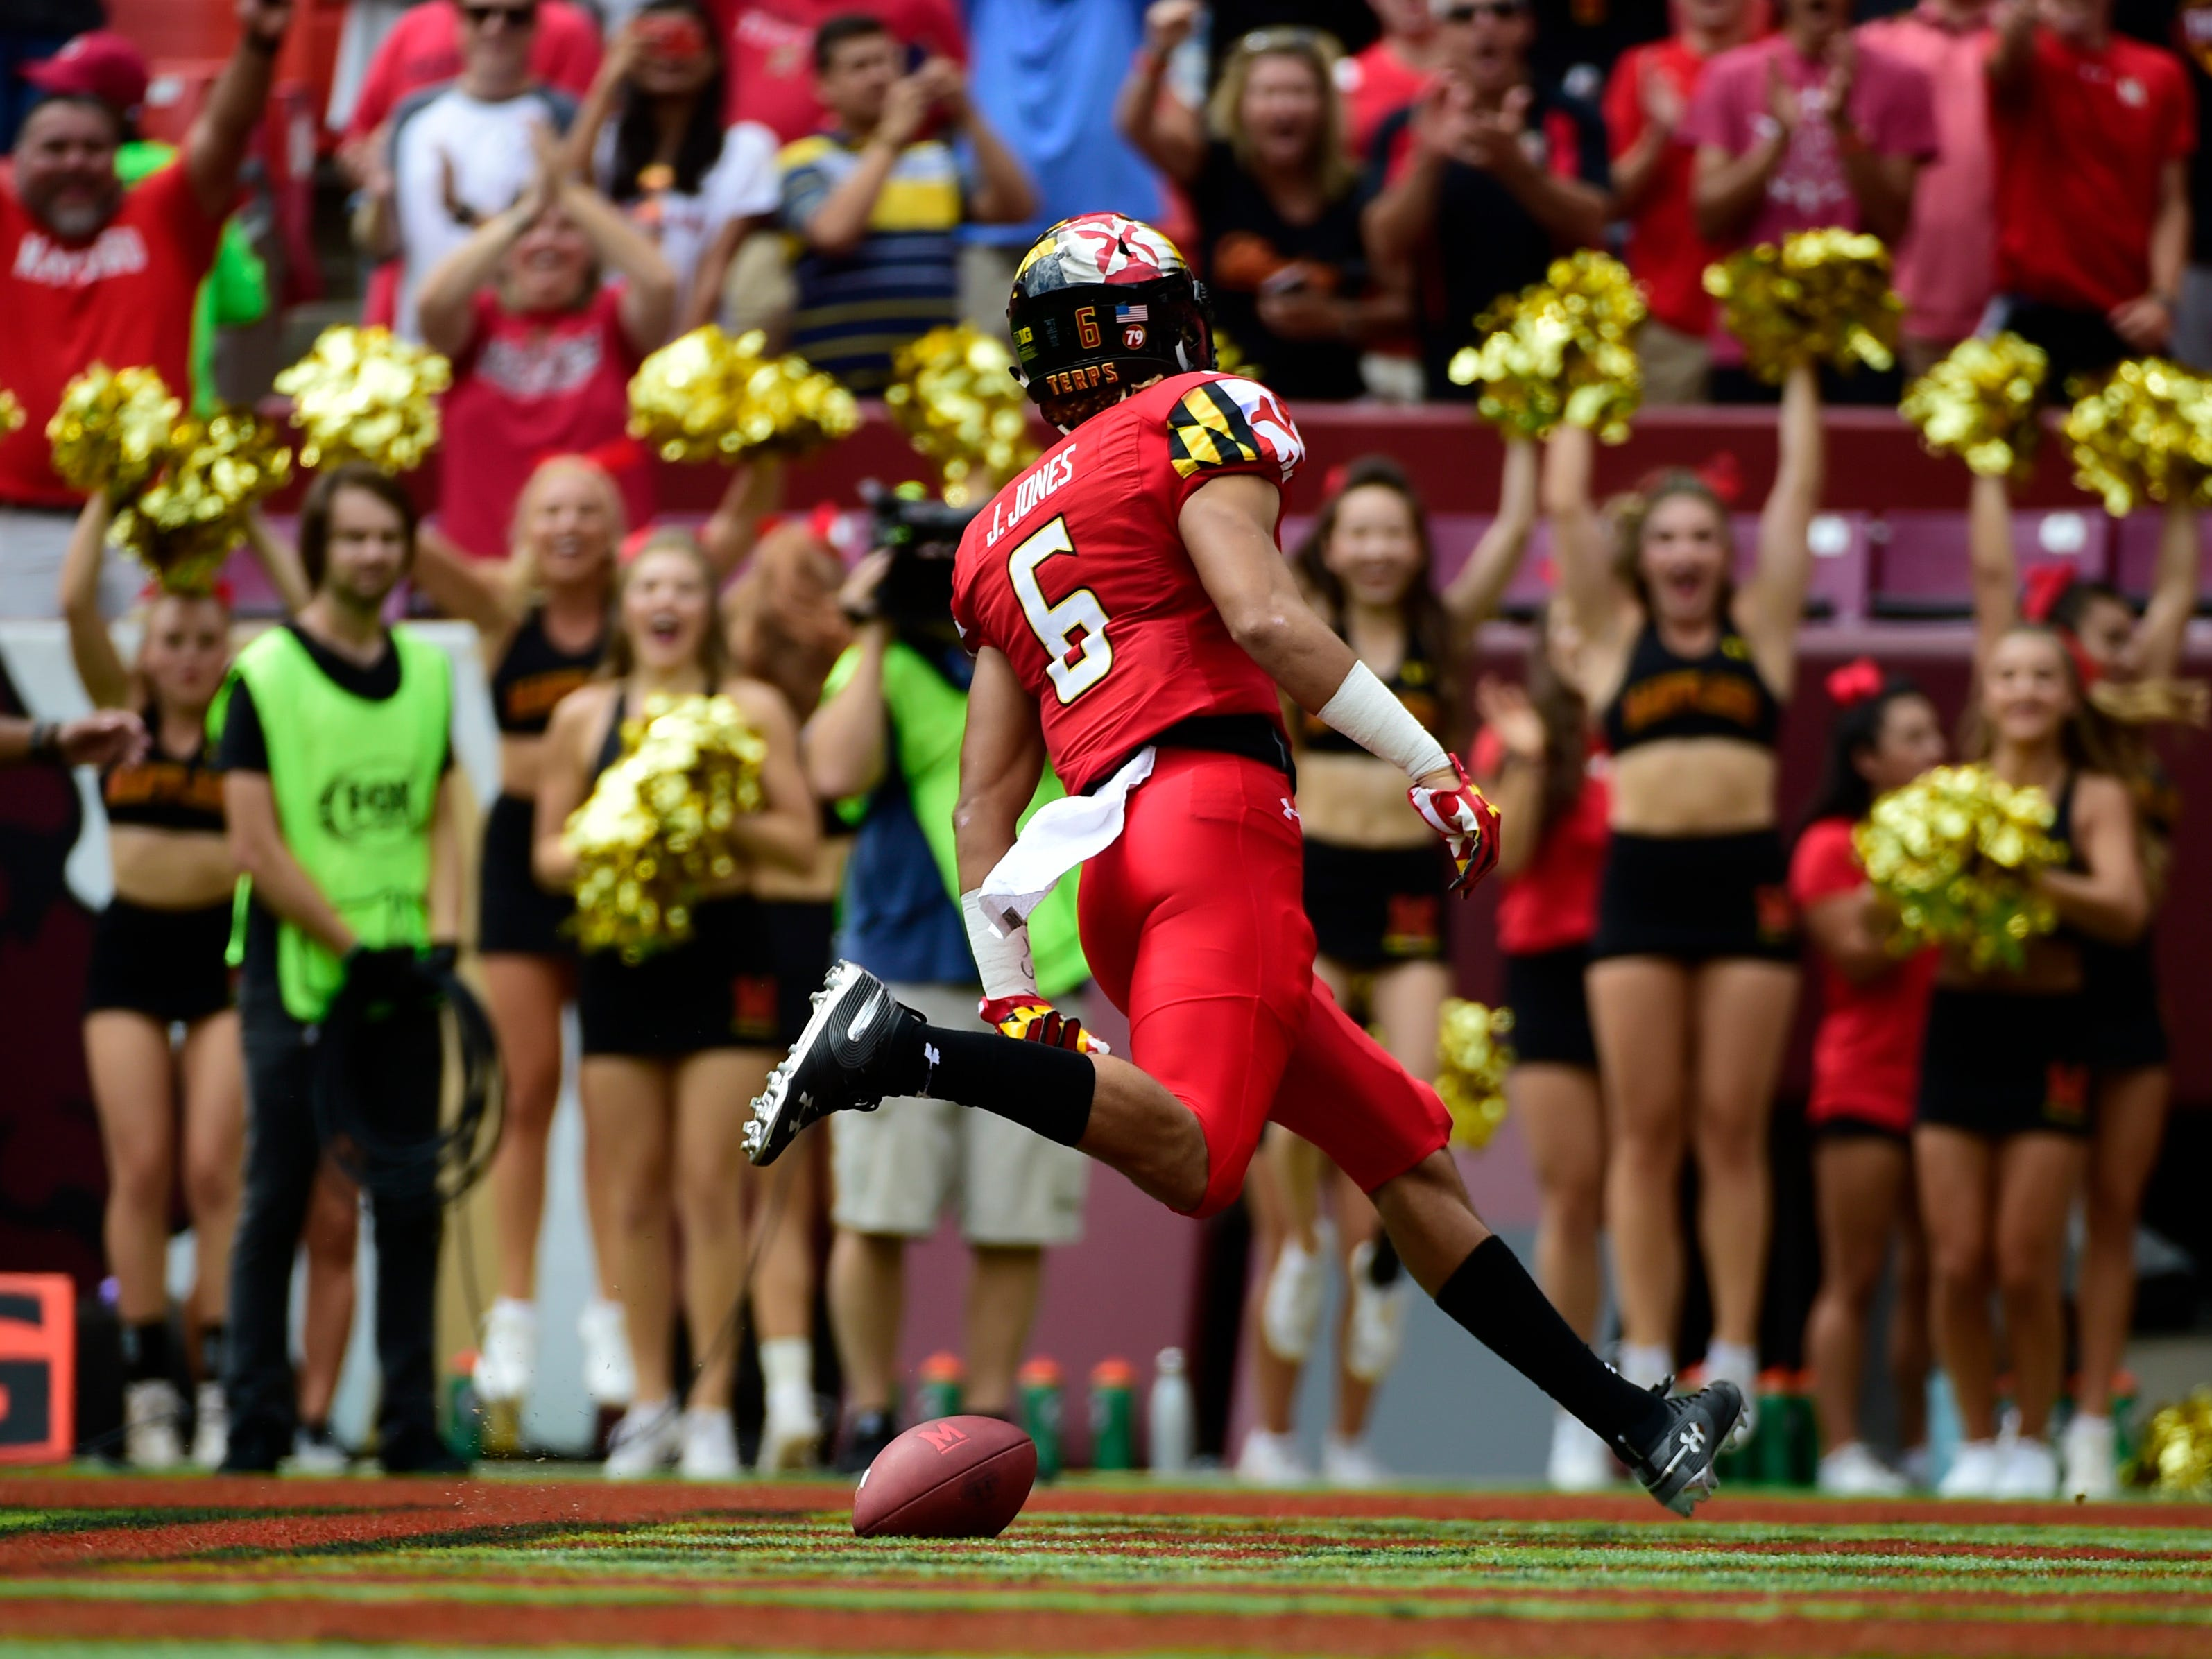 Maryland wide receiver Jeshaun Jones finds the end zone against Texas.